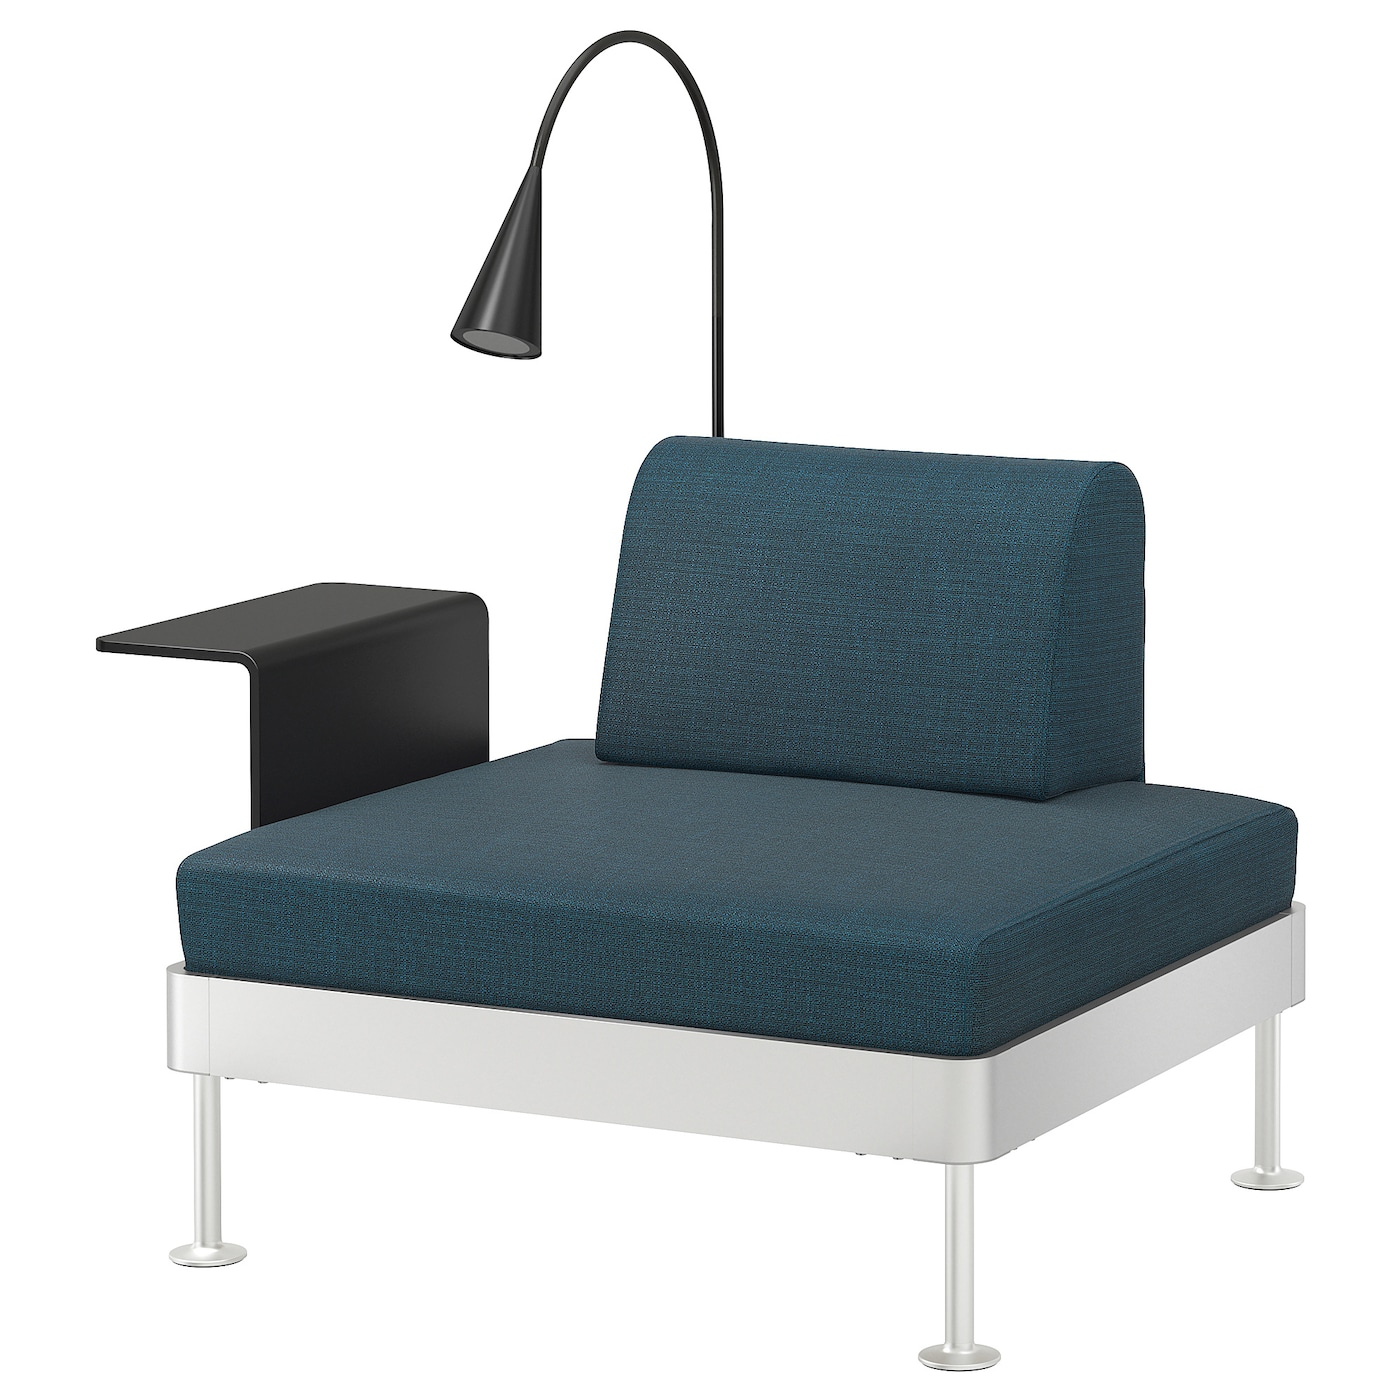 IKEA DELAKTIG armchair with side table and lamp